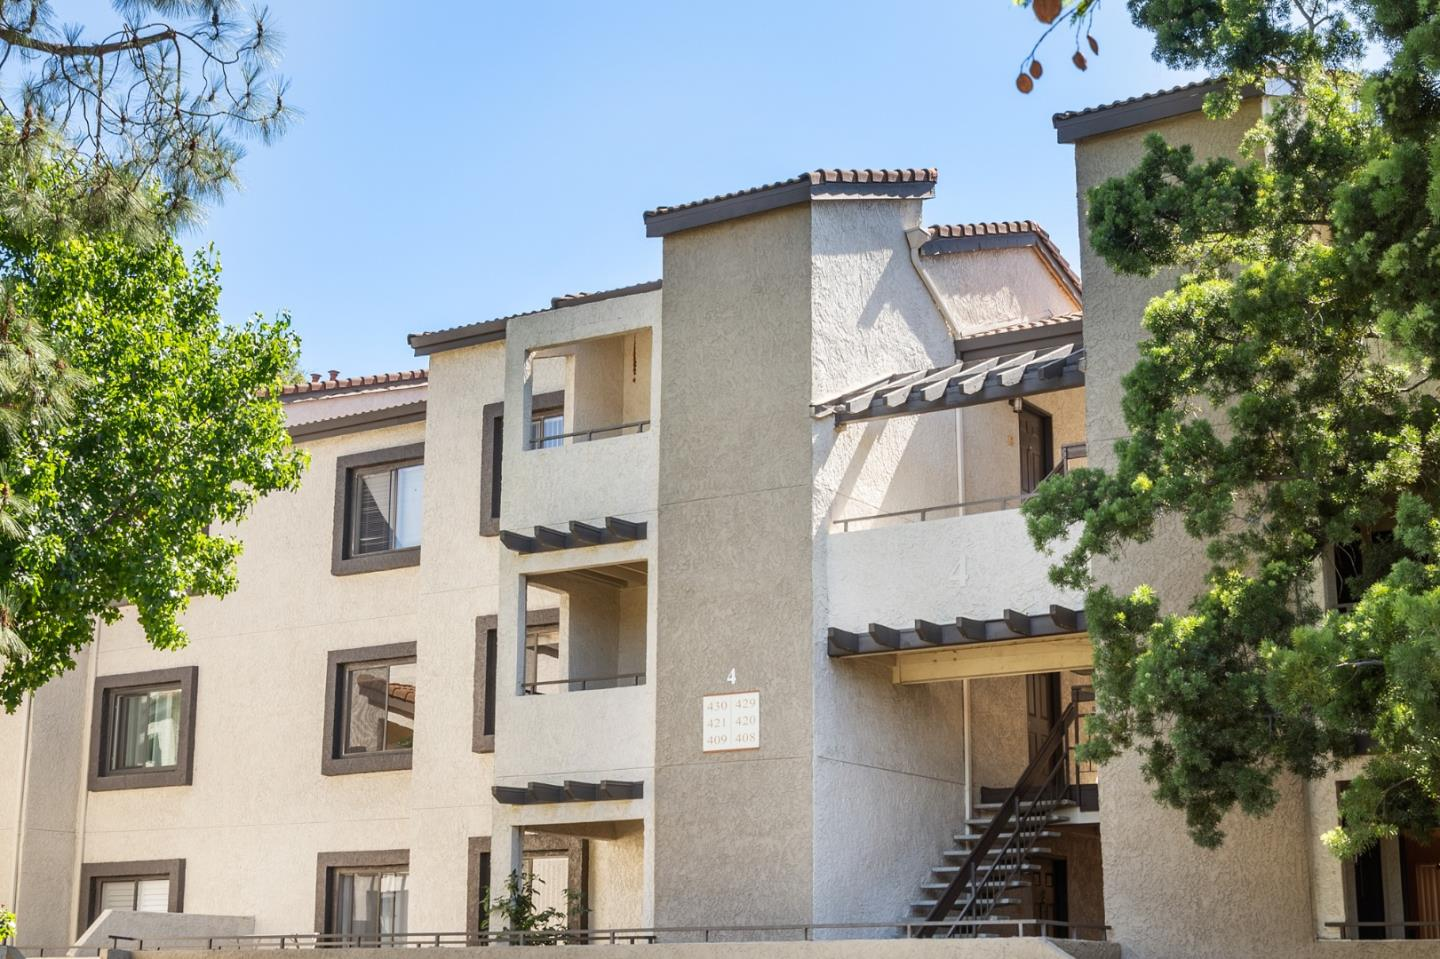 Stunning move-in ready 2 bed 2 bath condo, approximated 930 sqft. living space and built in 1987, located in the heart of Sunnyvale with top rated Cupertino schools - Stocklmeir Elementary and Cupertino Middle (Buyer to verify enrollment). Unit located on the 2nd floor and in the middle of the complex with two assigned gated underground parking, newly installed flooring throughout the unit, recessed lighting in living room, kitchen, and master bedroom, in-door washer & dryer with plenty of storage space, granite counter top in kitchen, cozy balcony on the left overlooking the barbecue area, and a large storage room. This beautiful complex has pool, spa, club house, gym, children playground, and barbecue area and is centrally located close to El Camino Real and S. Wolfe Road with quick access to Hwy 280/85, restaurants, retail, shops, supermarkets and many high-tech companies. HOA fee $408/month covers sewer, garbage, and water. Great starter home or investment opportunity.